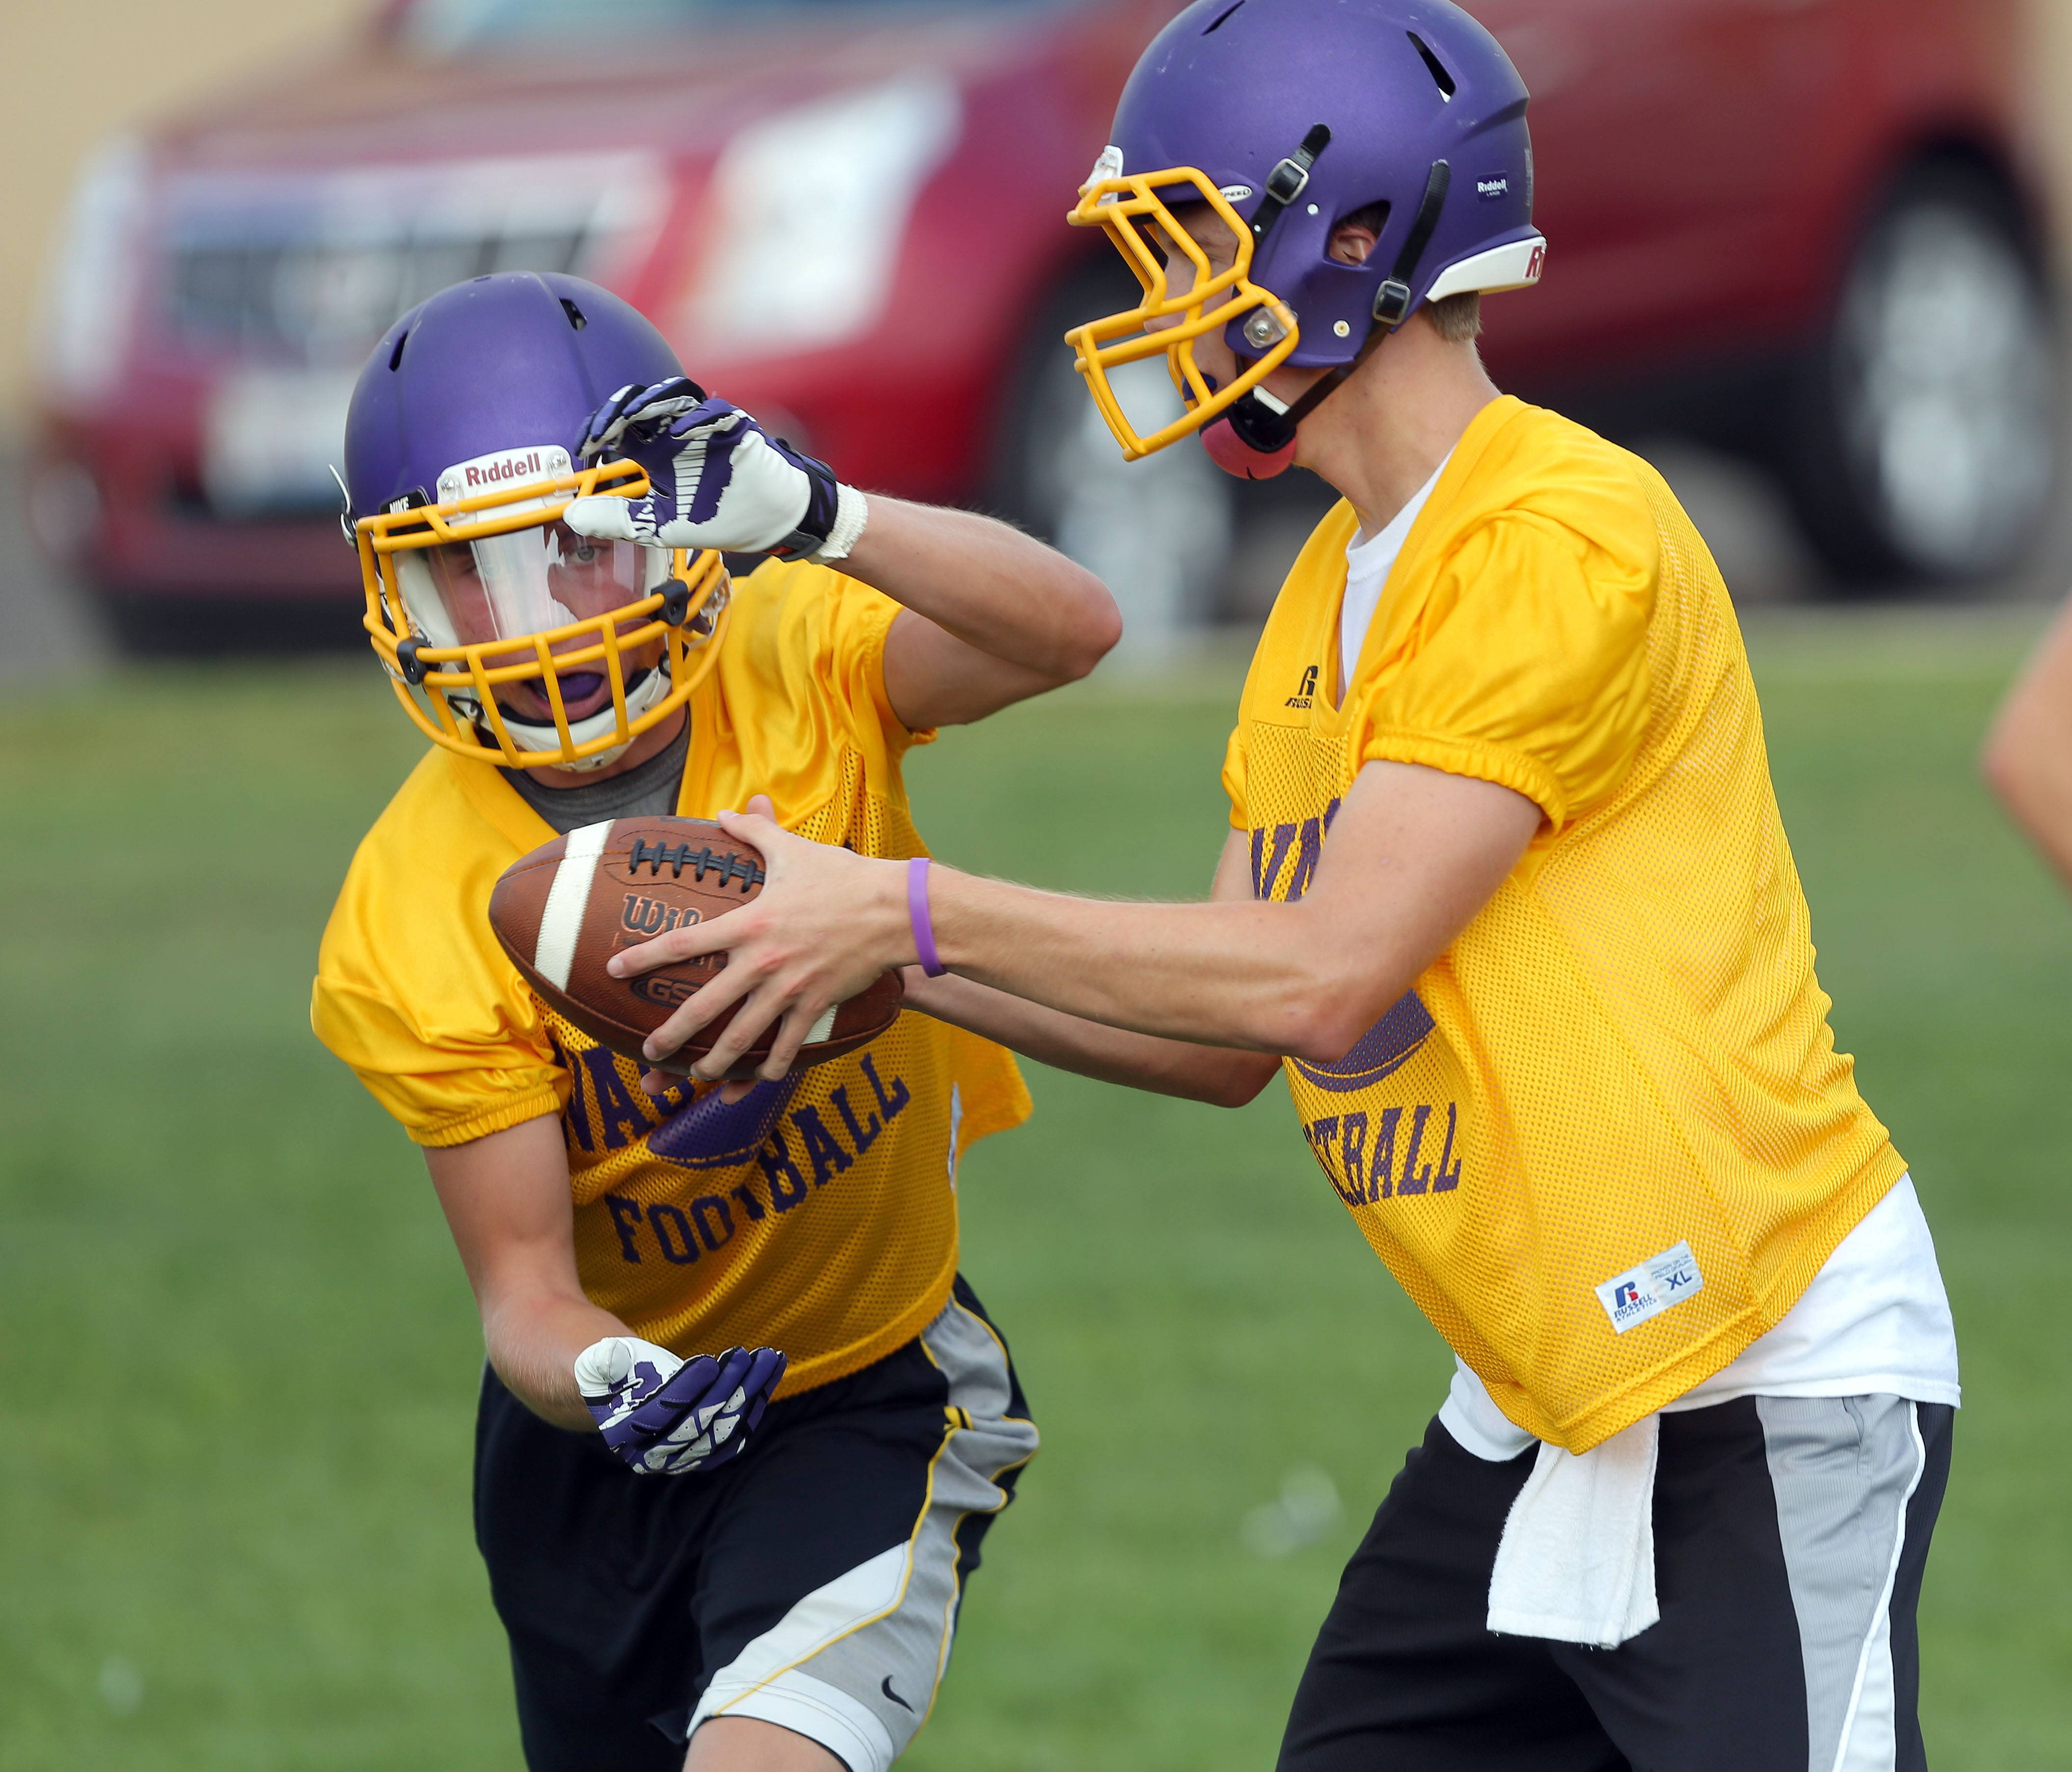 Quarterback Kevin Malisheski, right, hands off to running back Tyler Theel during football practice Monday at Wauconda.